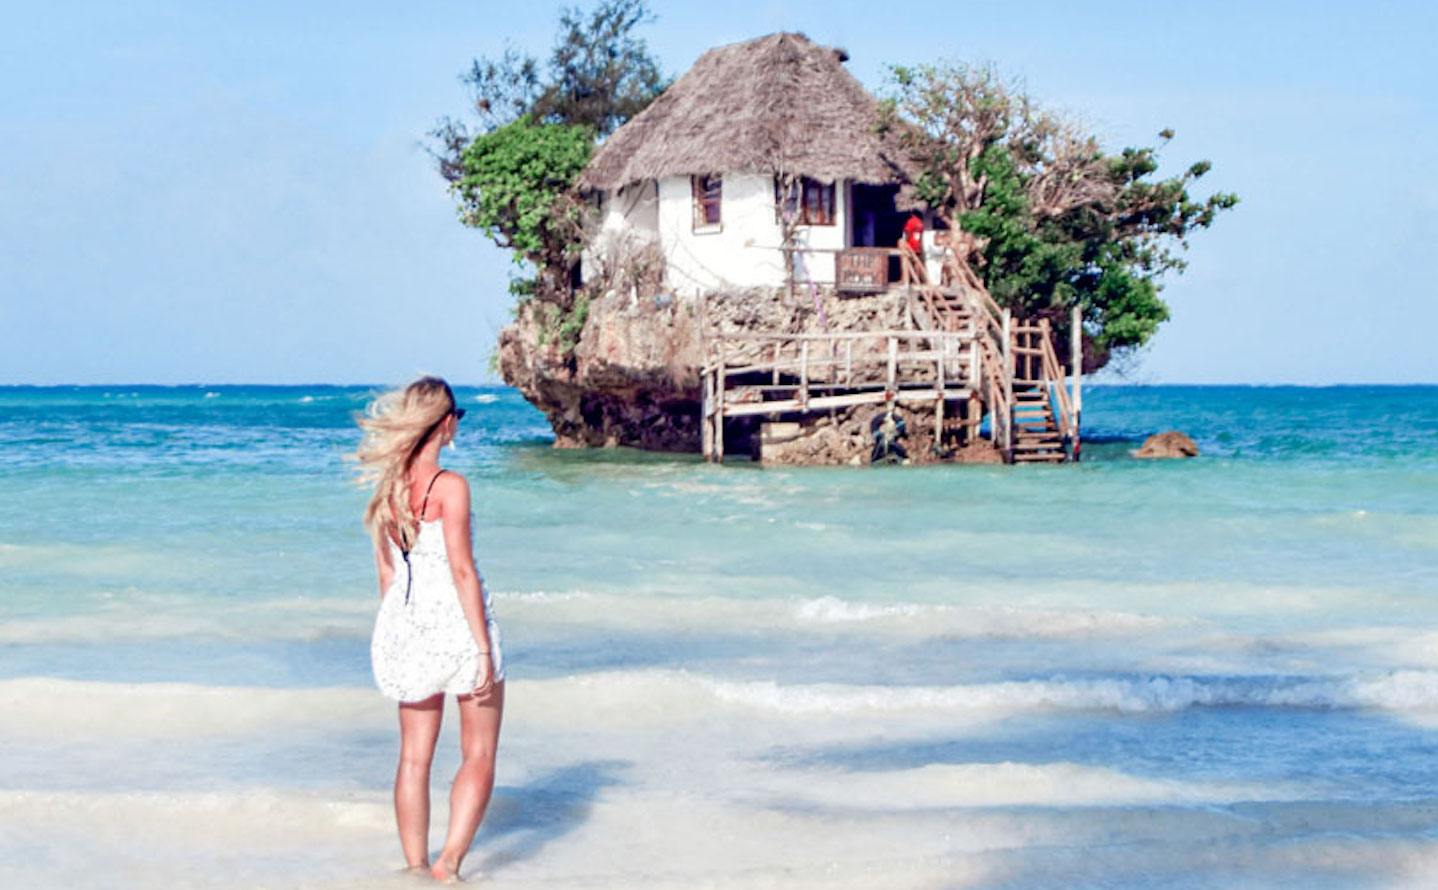 This Rock Restaurant Zanzibar looks like it's run by Mother Nature herself